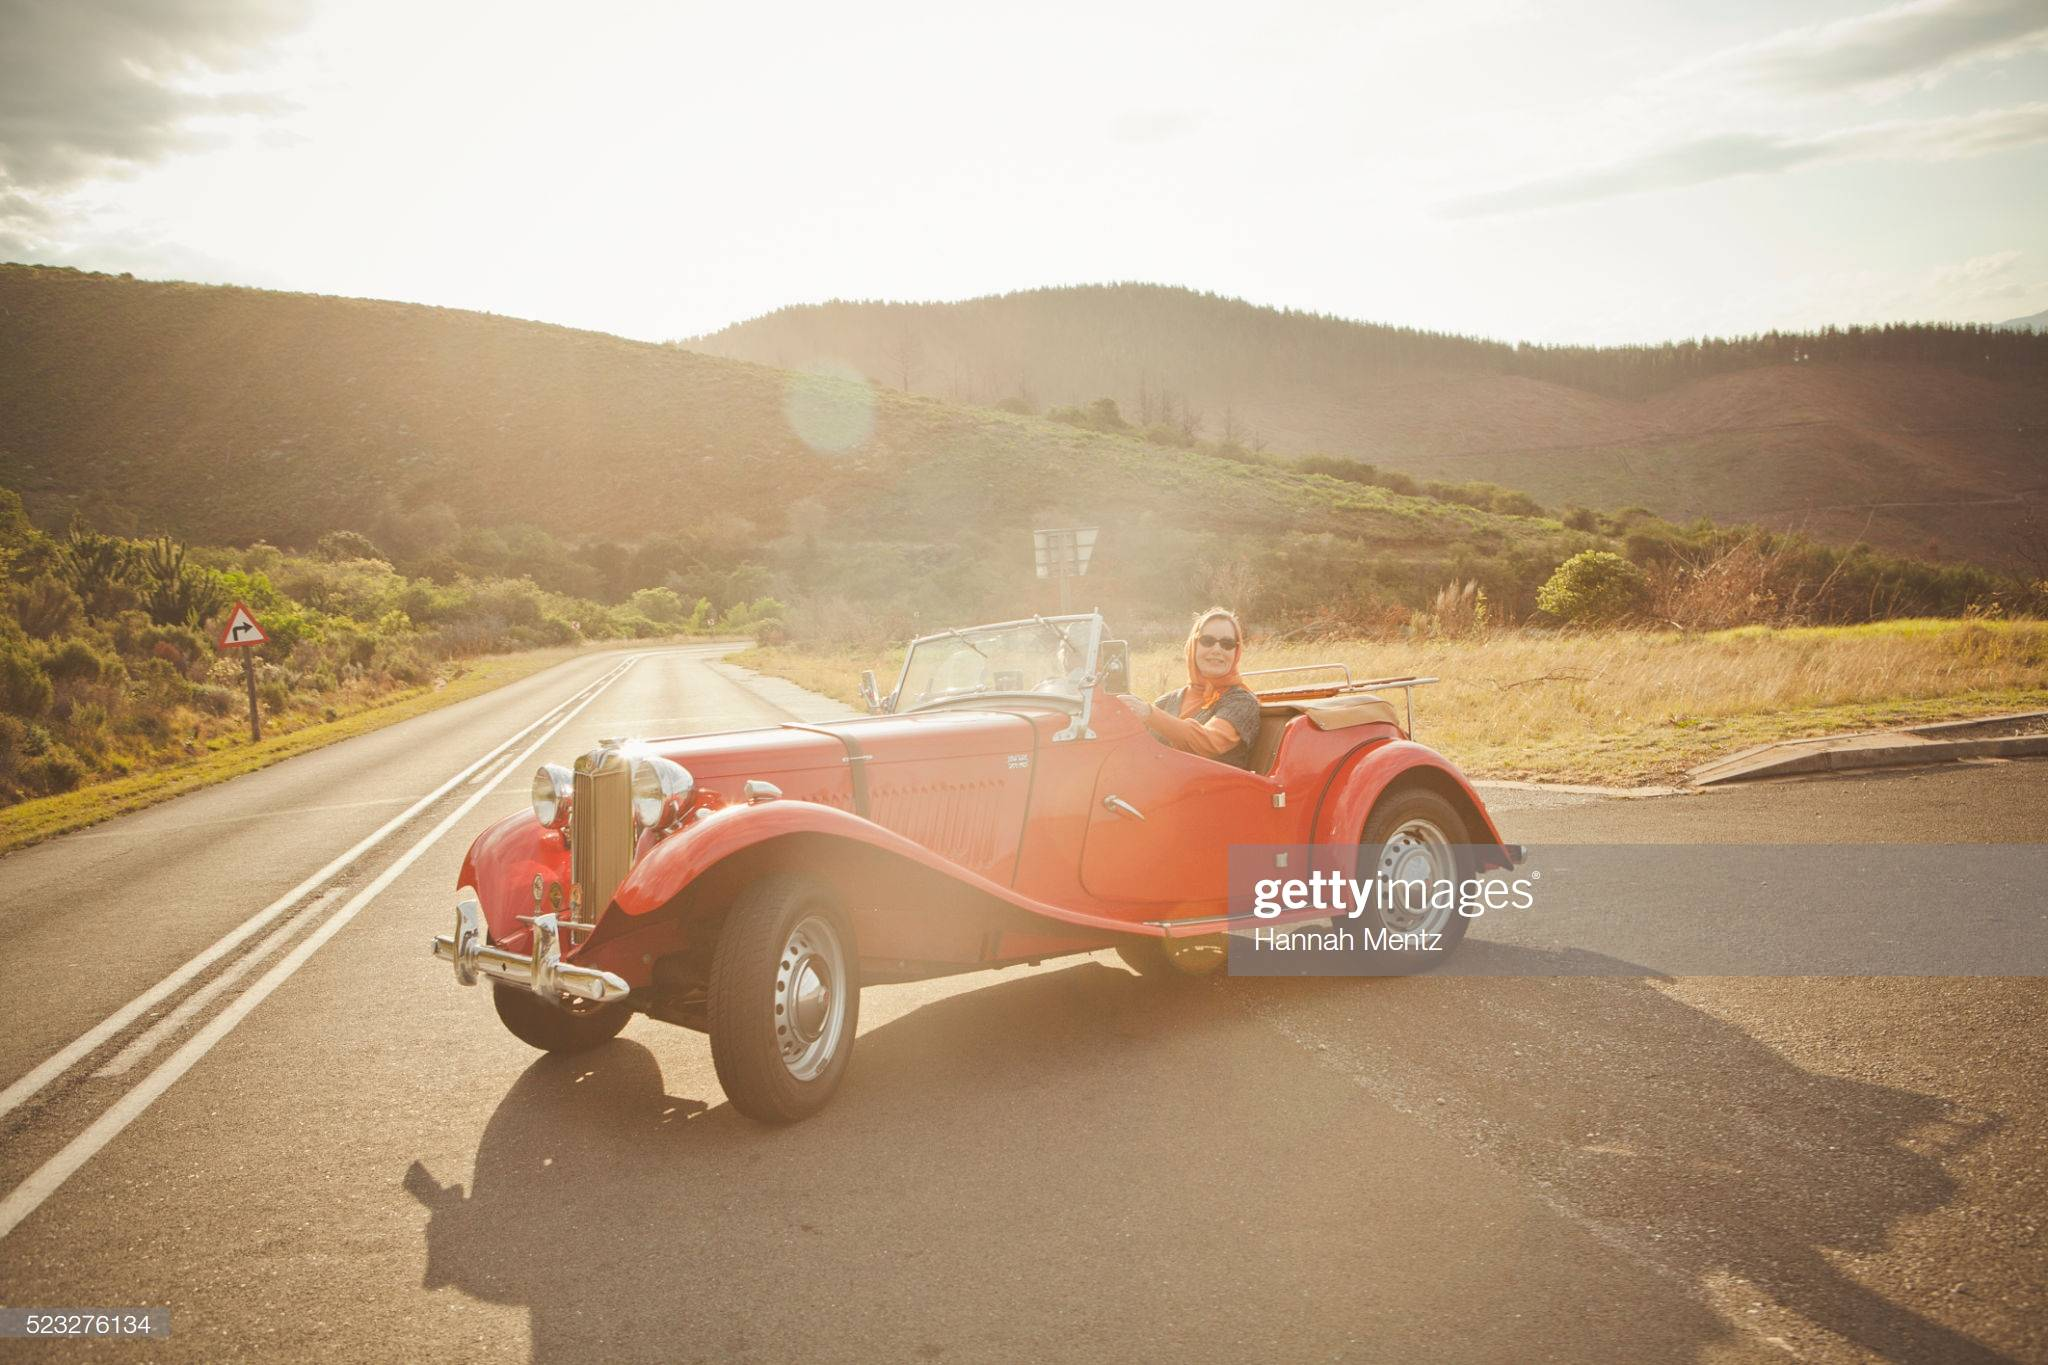 gettyimages-523276134-2048x2048